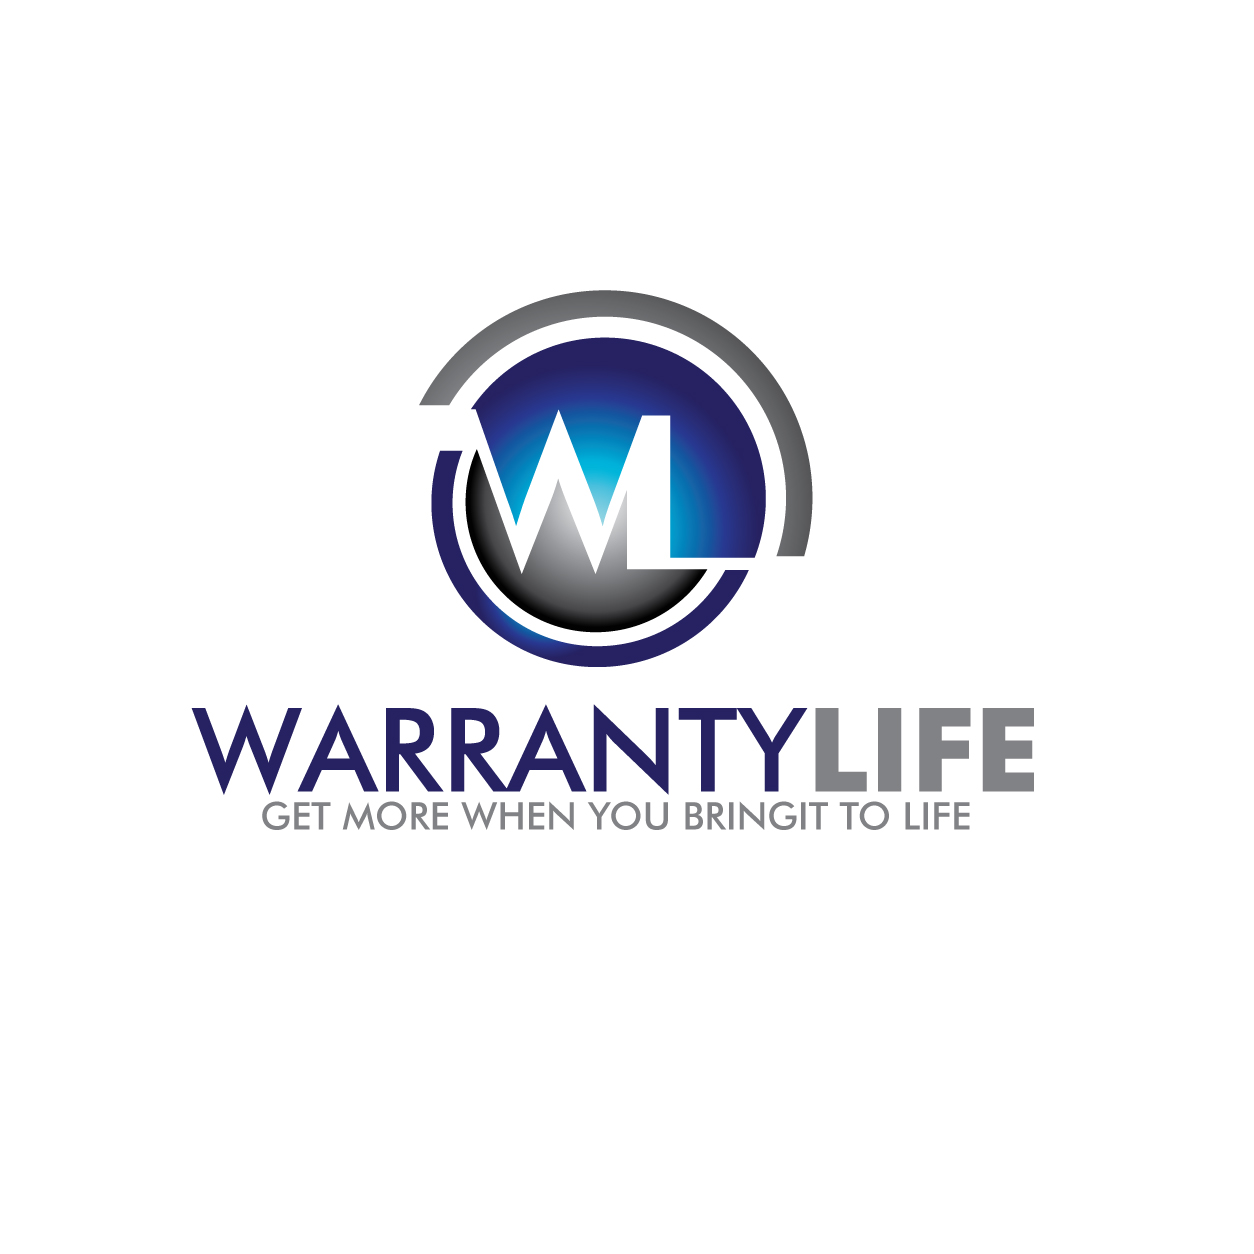 Logo Design by stormbighit - Entry No. 98 in the Logo Design Contest WarrantyLife Logo Design.